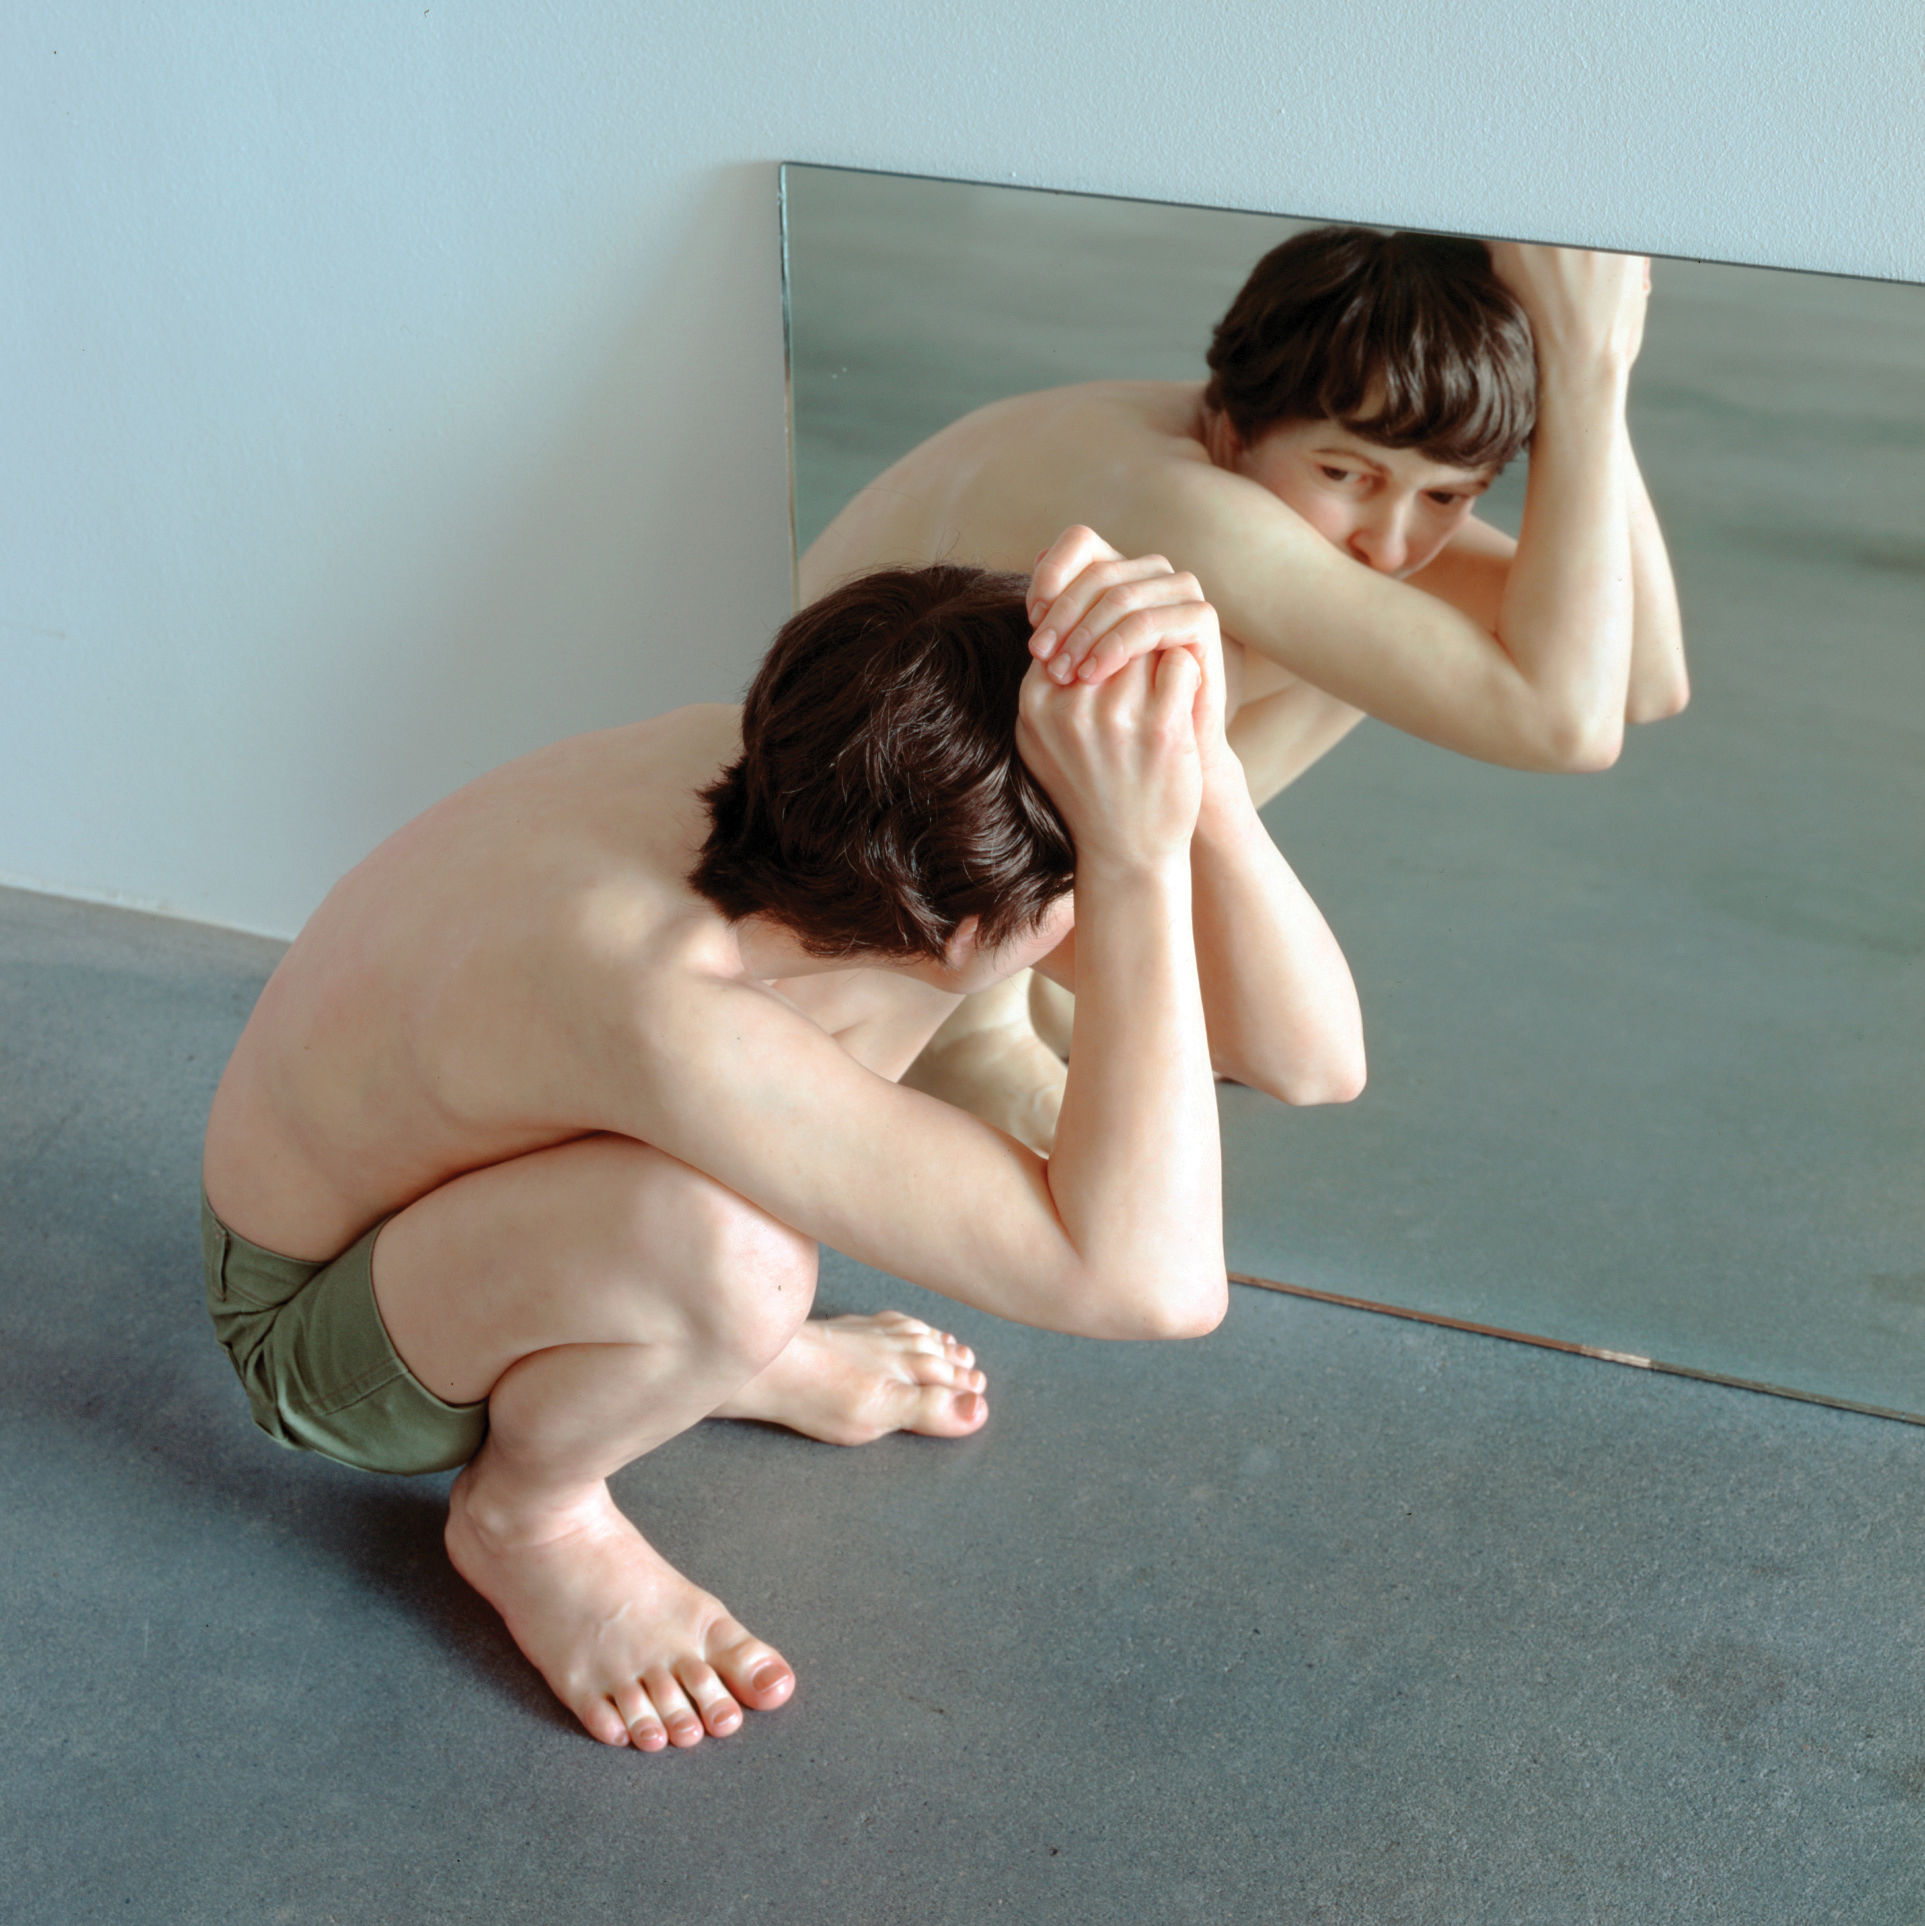 0417 on the town crouching boy in mirror sculpture ron mueck mfah snpay8